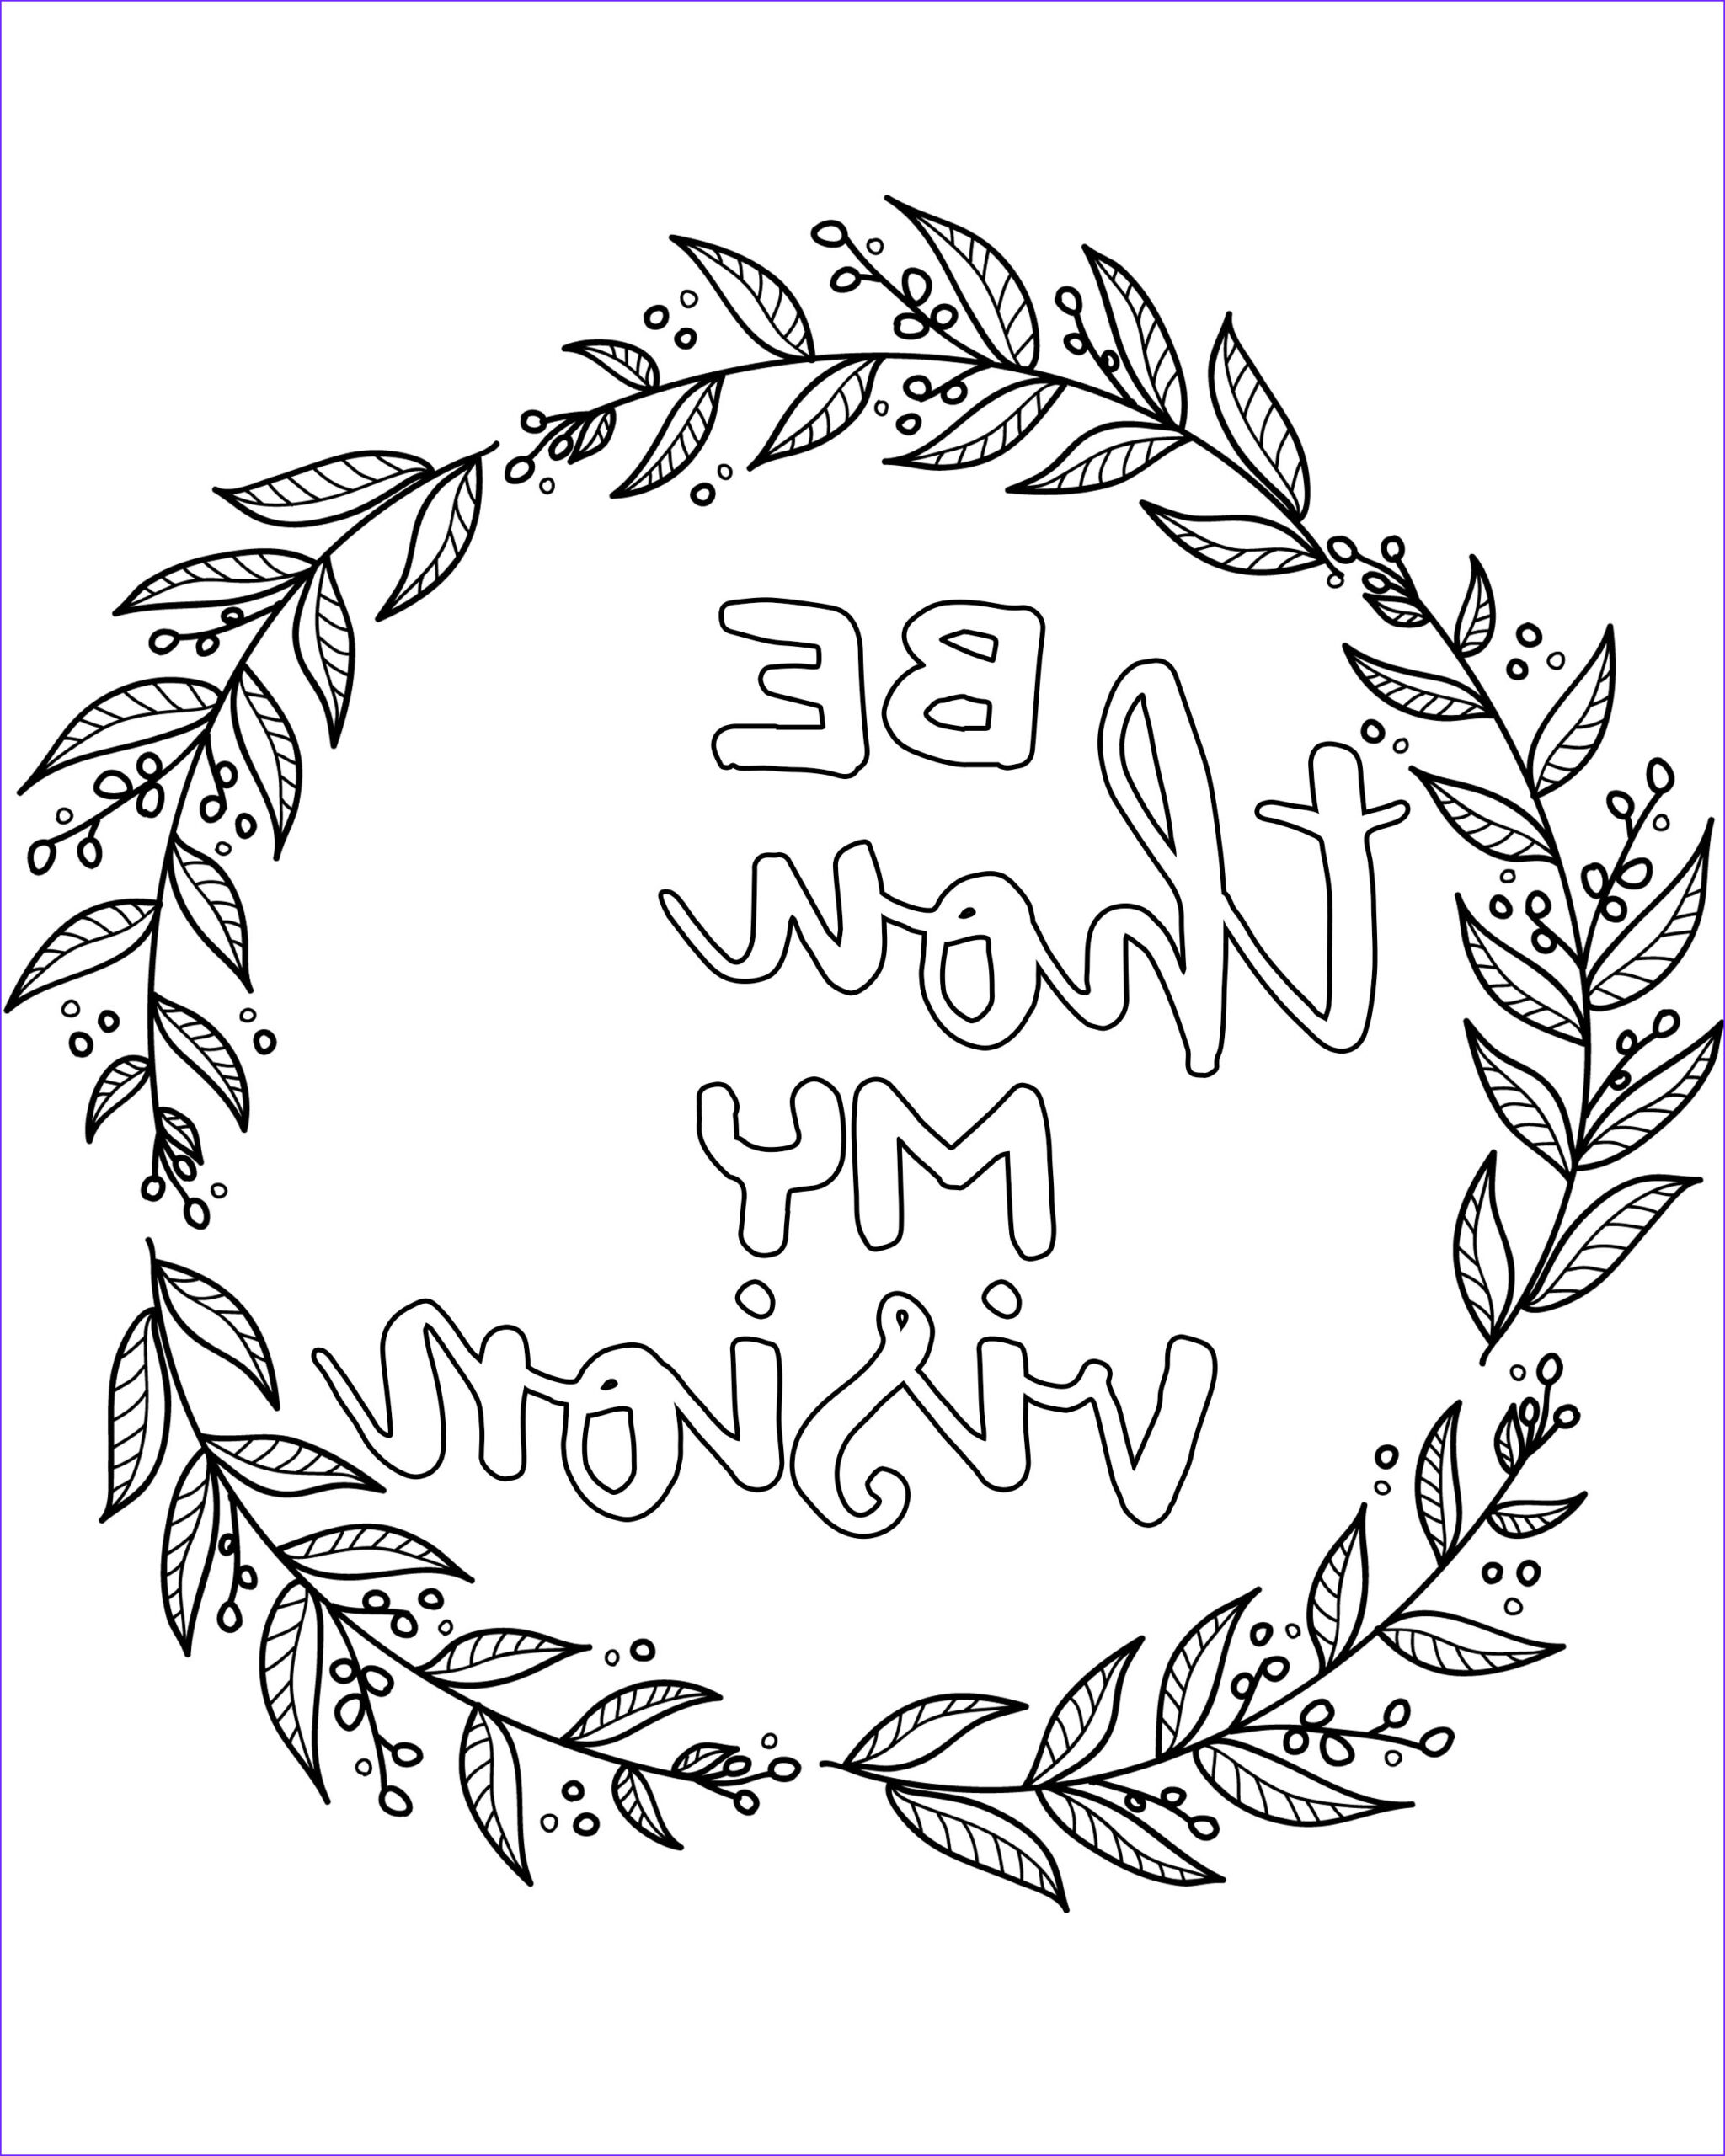 Coloring Page for Adults Printable Luxury Photography Free Printable Adult Coloring Pages Hymns & Scripture